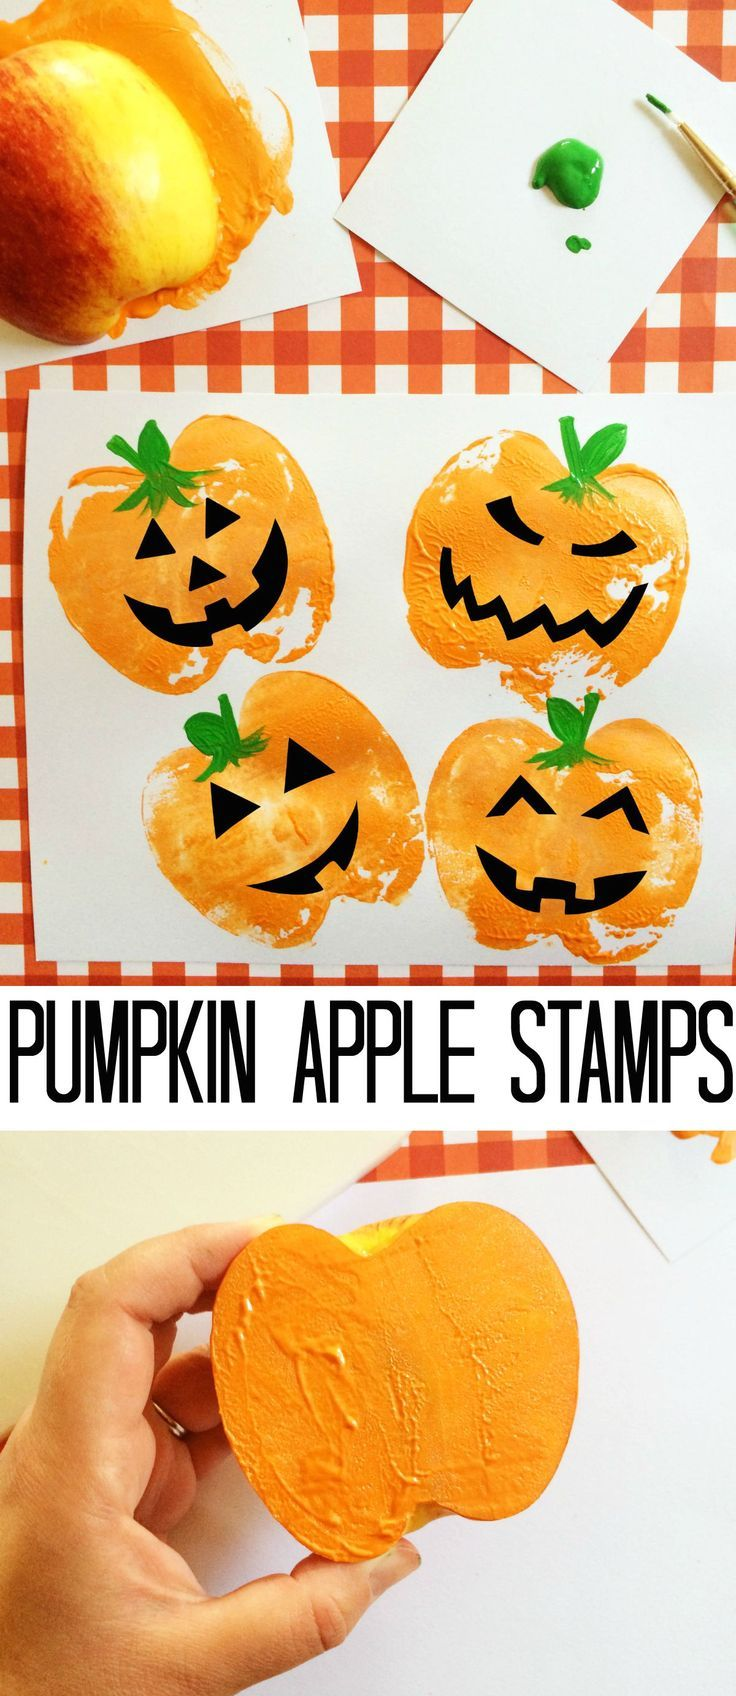 Pumpkin Apple Stamps